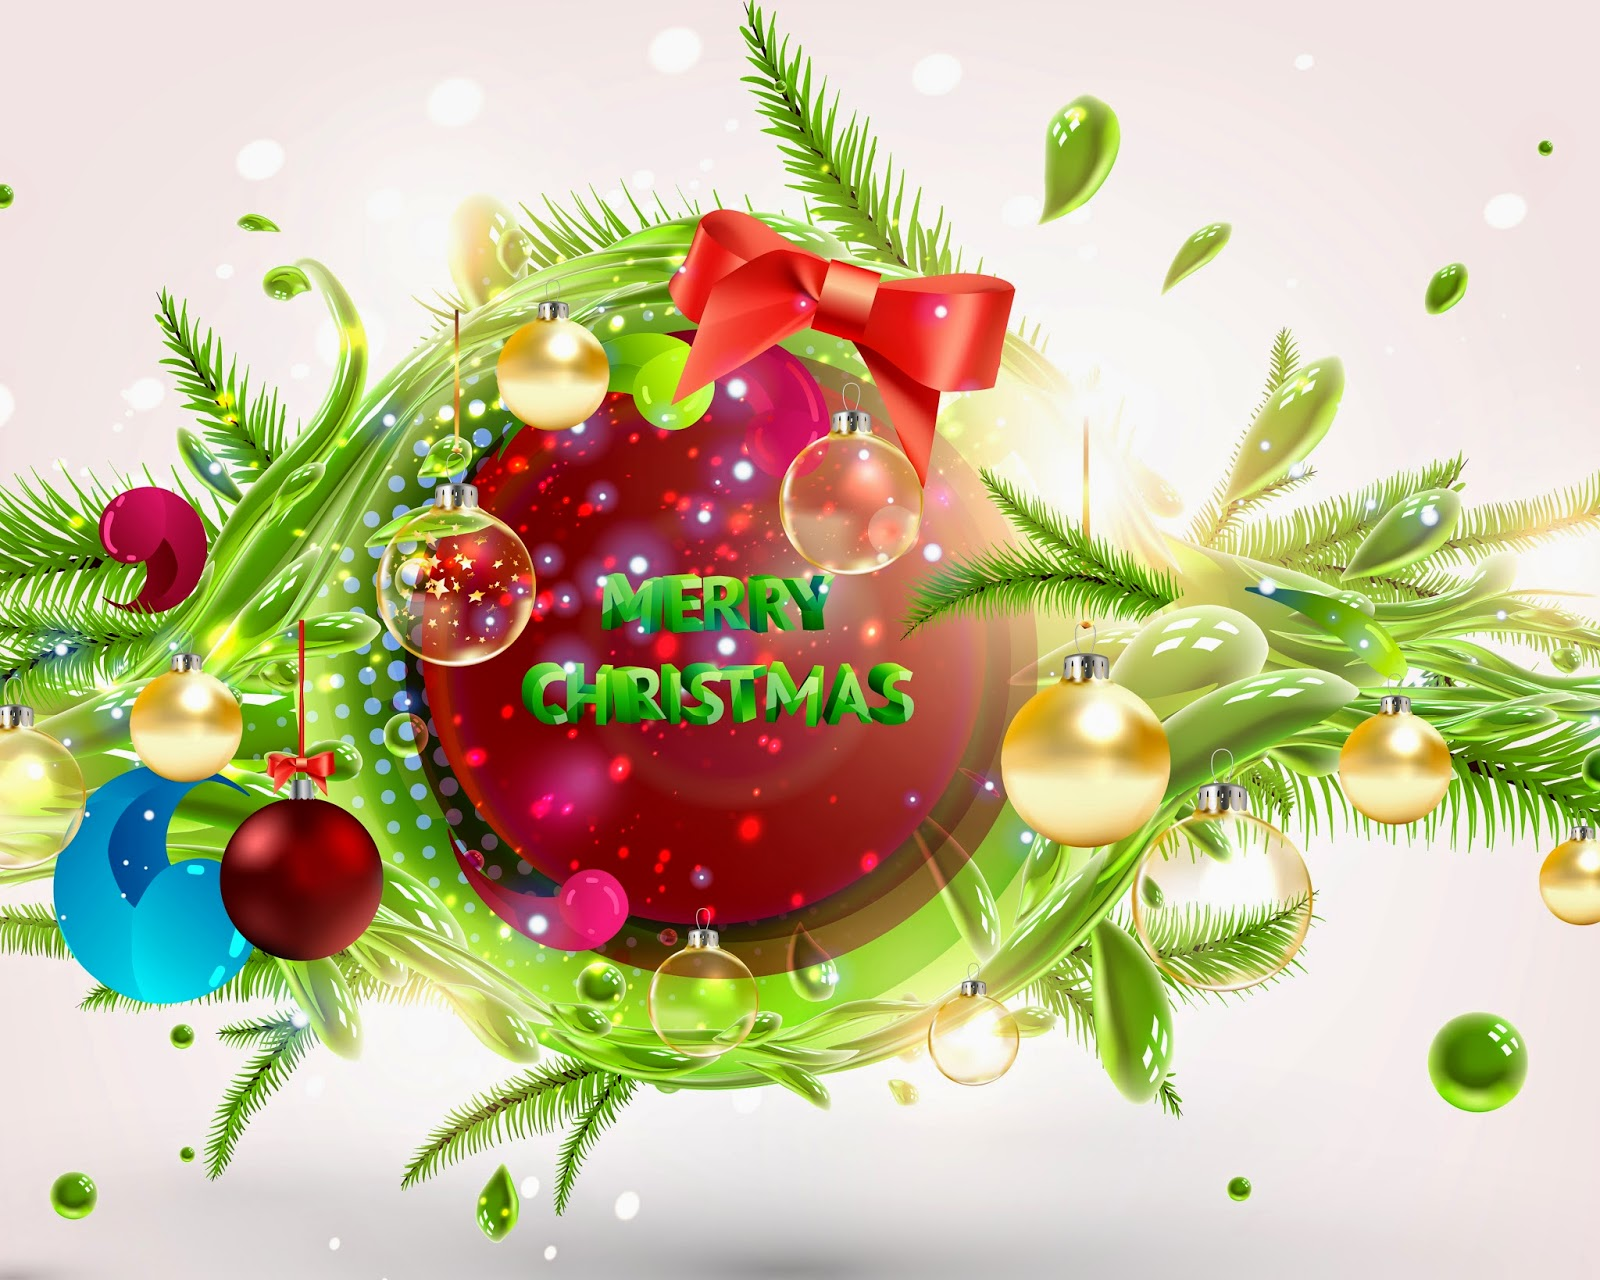 Merry-Christmas-wishes-images-for-facebook-social-sharing-friends